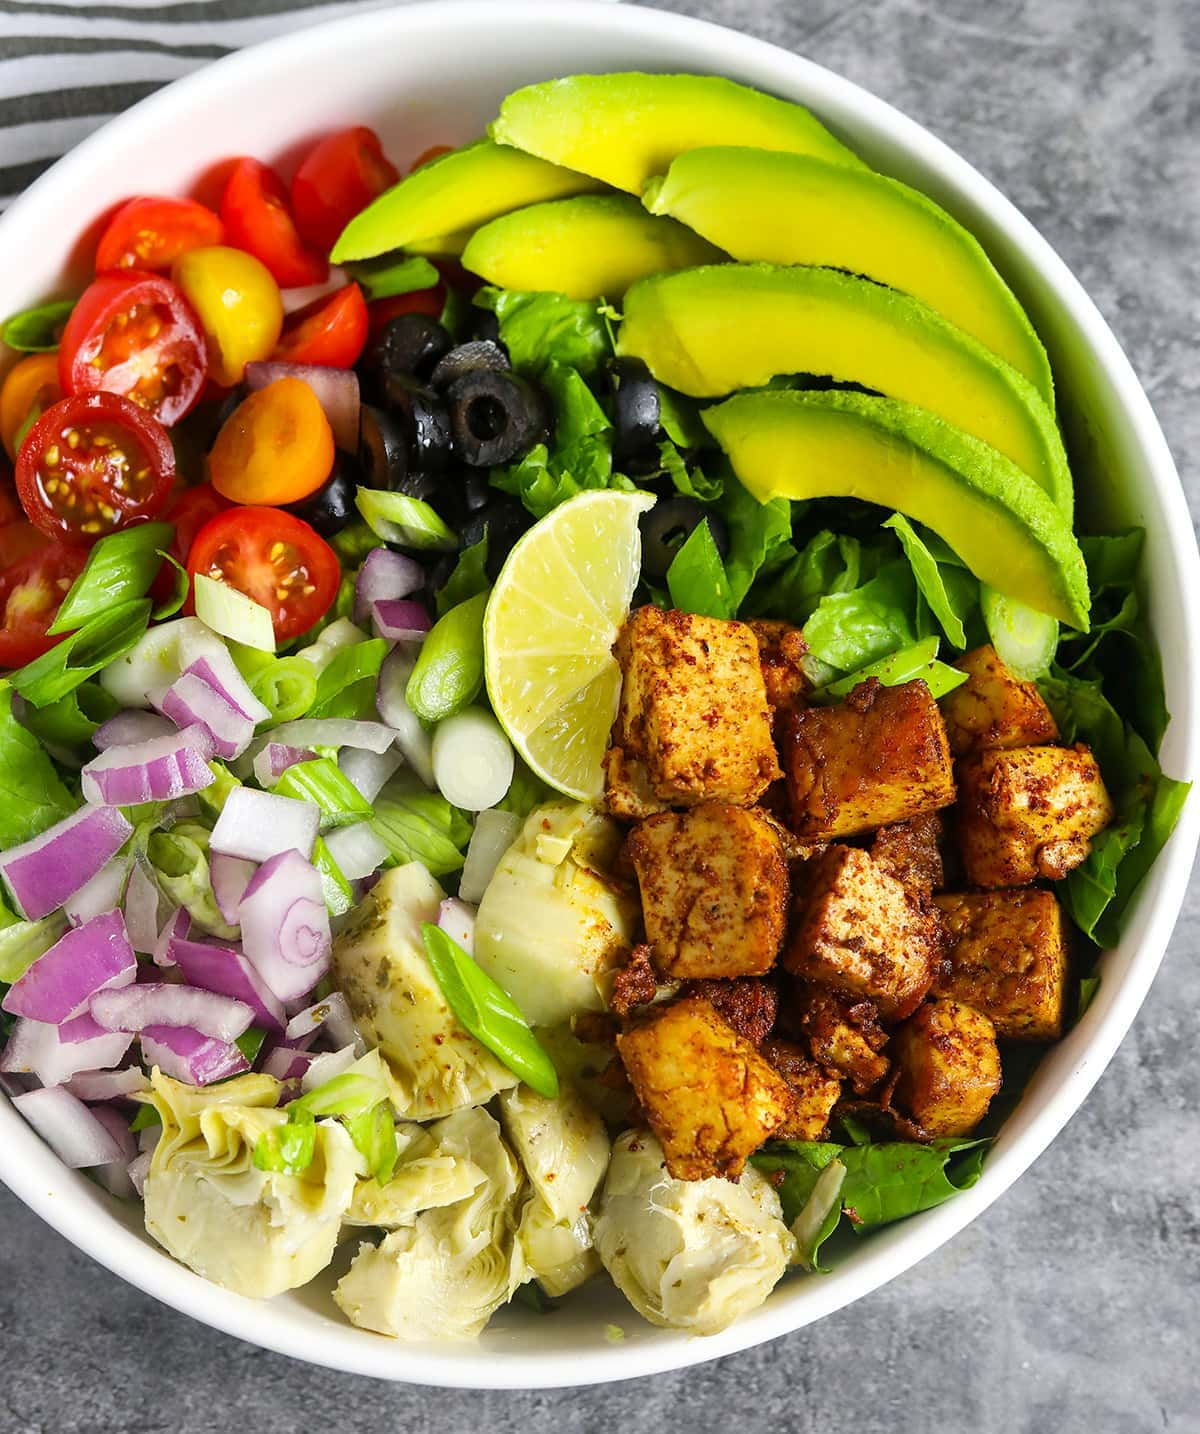 Overlay Cajun tofu salad in a white bowl with slices of avocado, tomato, red onion, marinated tofu, artichoke hearts, green onion, lettuce, olives in a white bowl on a grey background